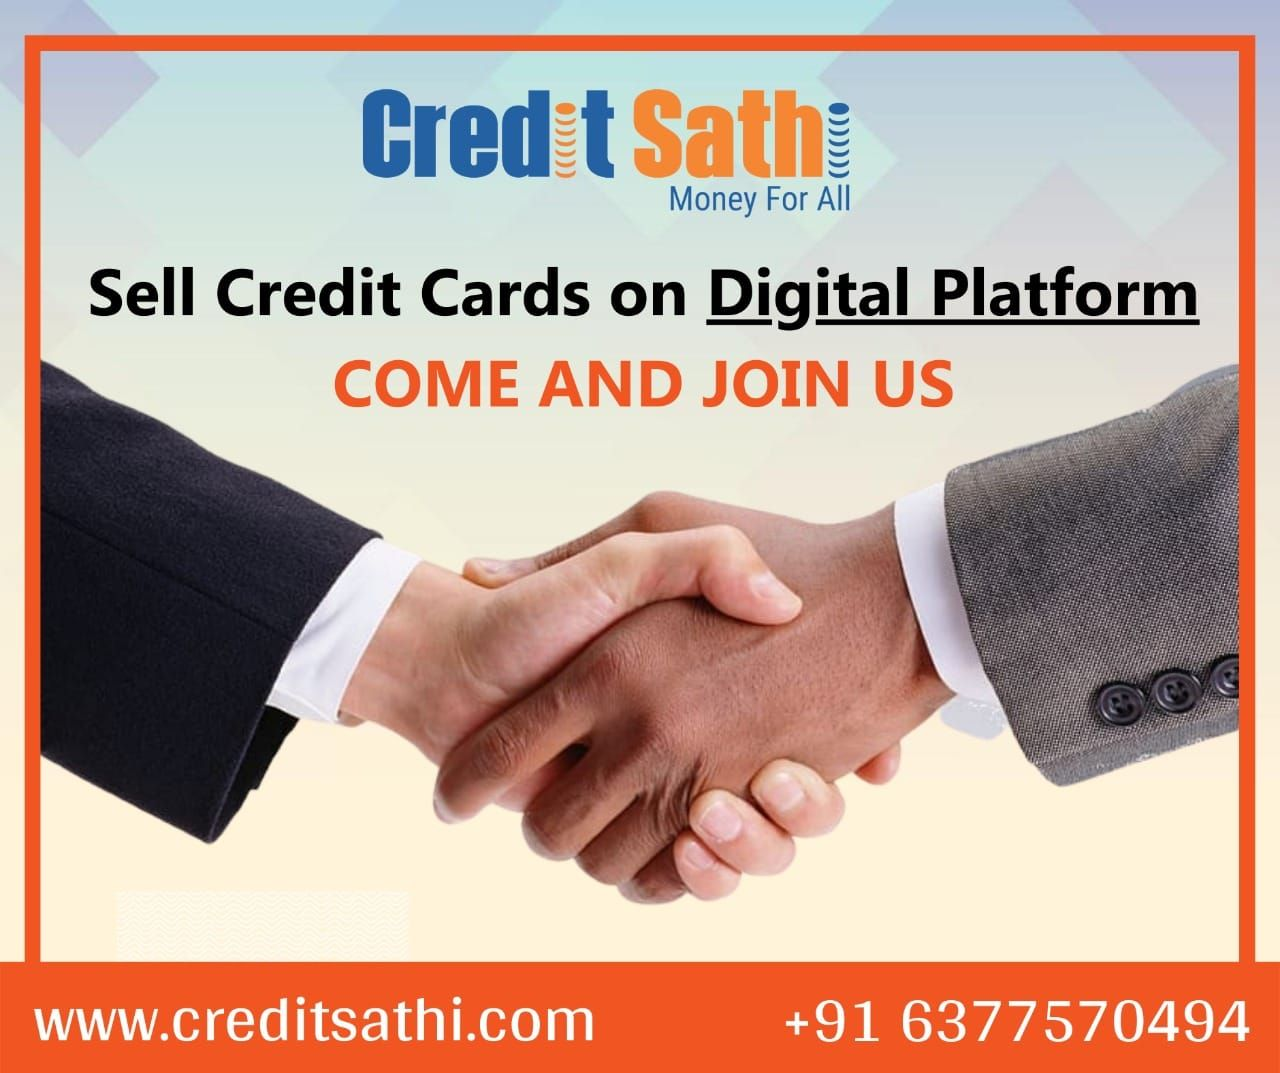 Join Us Be A Creditsthi In 2020 Credit Card Personal Loans Things To Sell